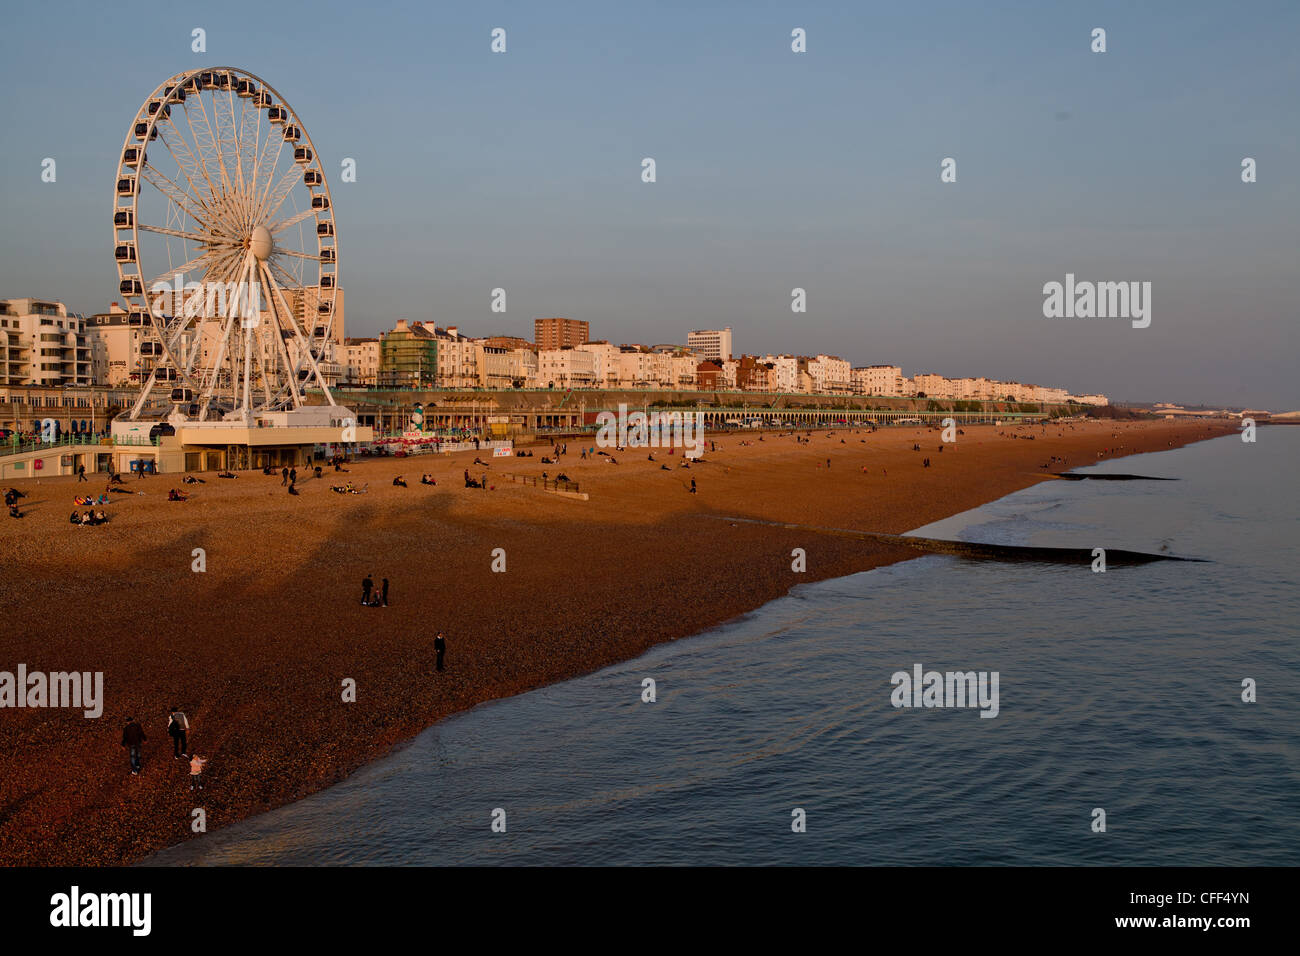 Wheel of excellence, Brighton - Stock Image